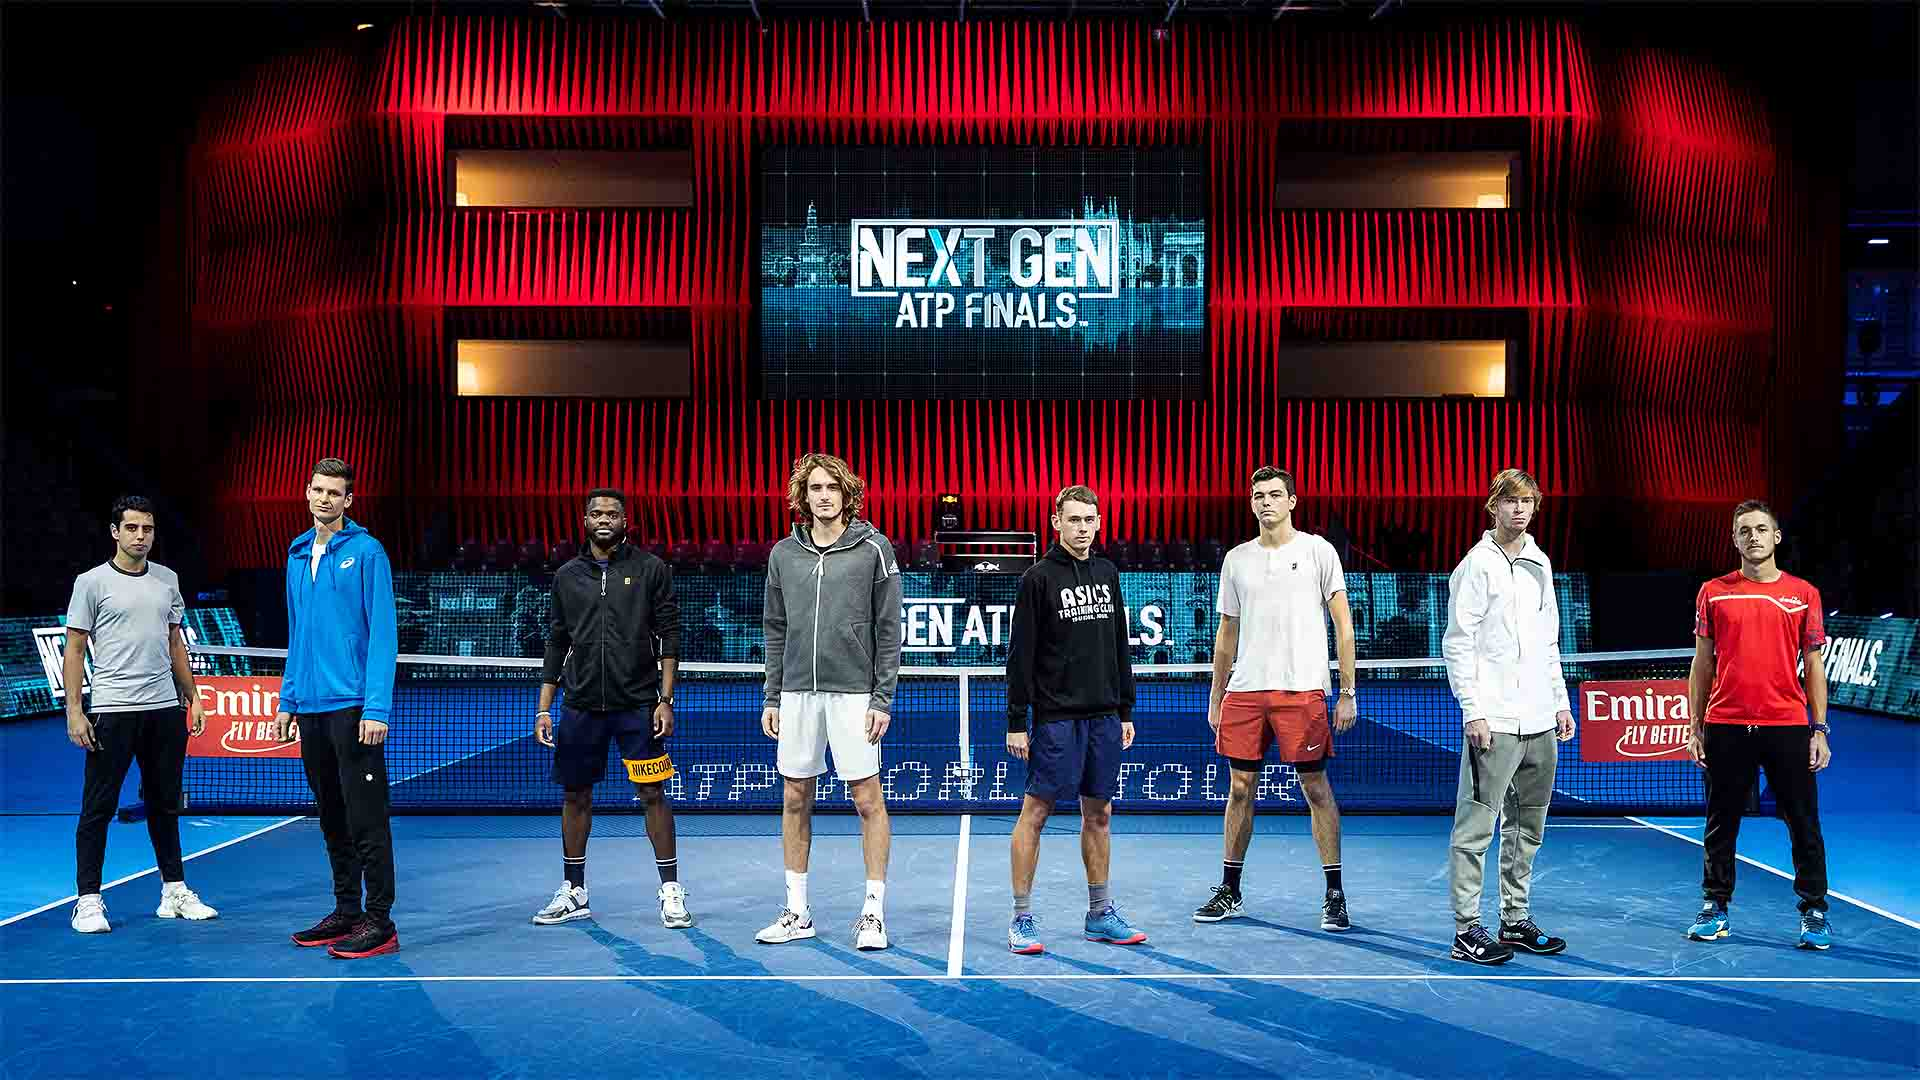 2018-next-gen-atp-finals-group-photo